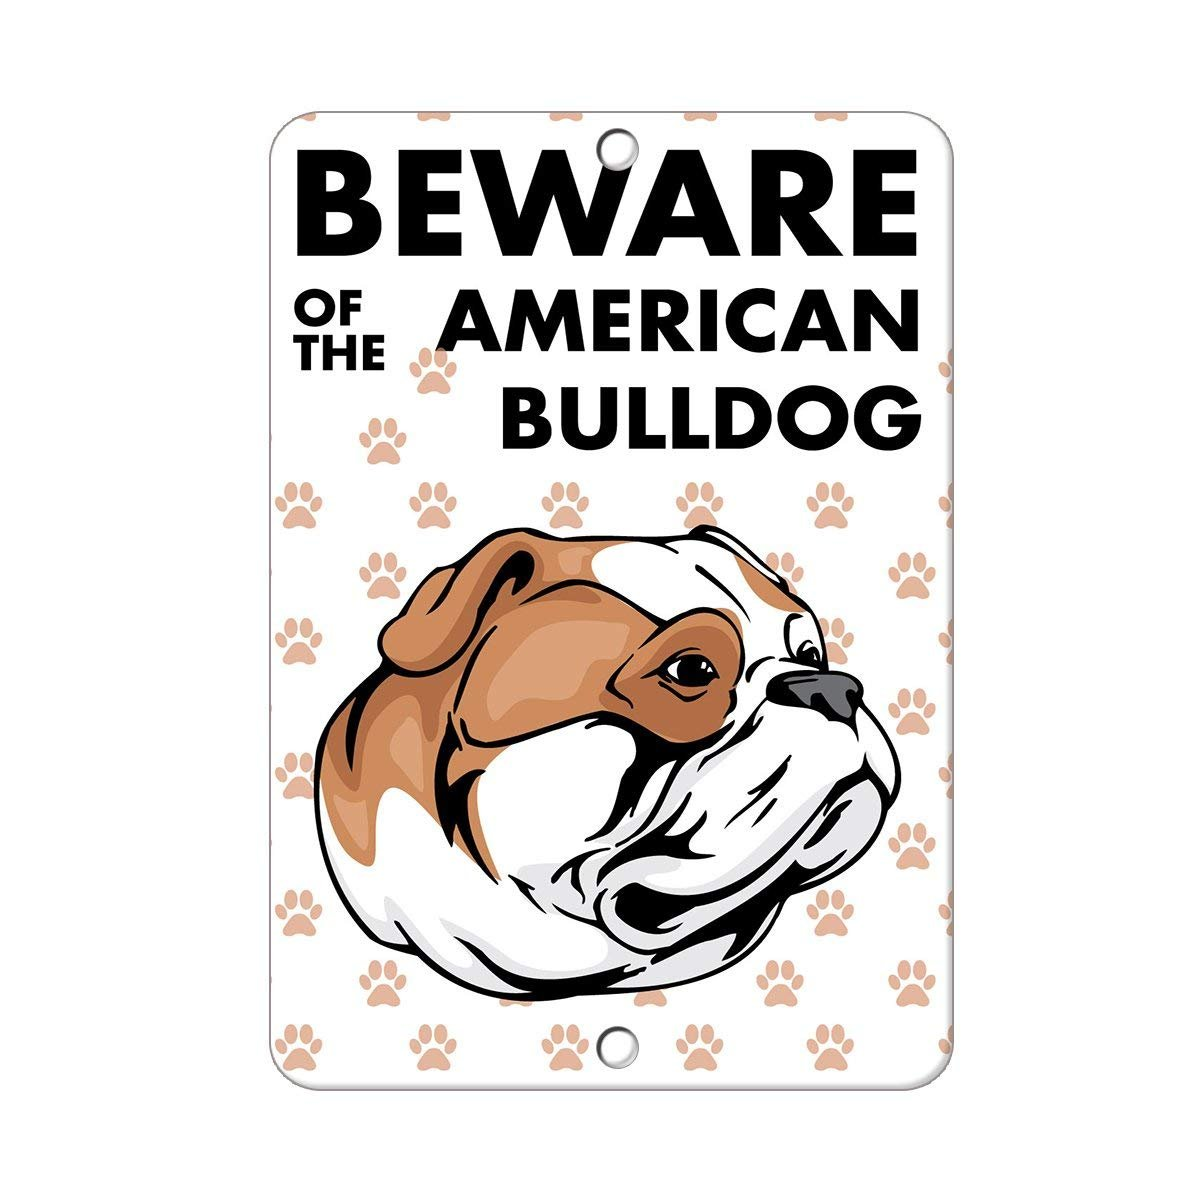 Beware of American Bulldog Dog Funny Sign Gift Metal Sign Wall Plaque Decoration Caution Sign Teisyouhu sign decoration